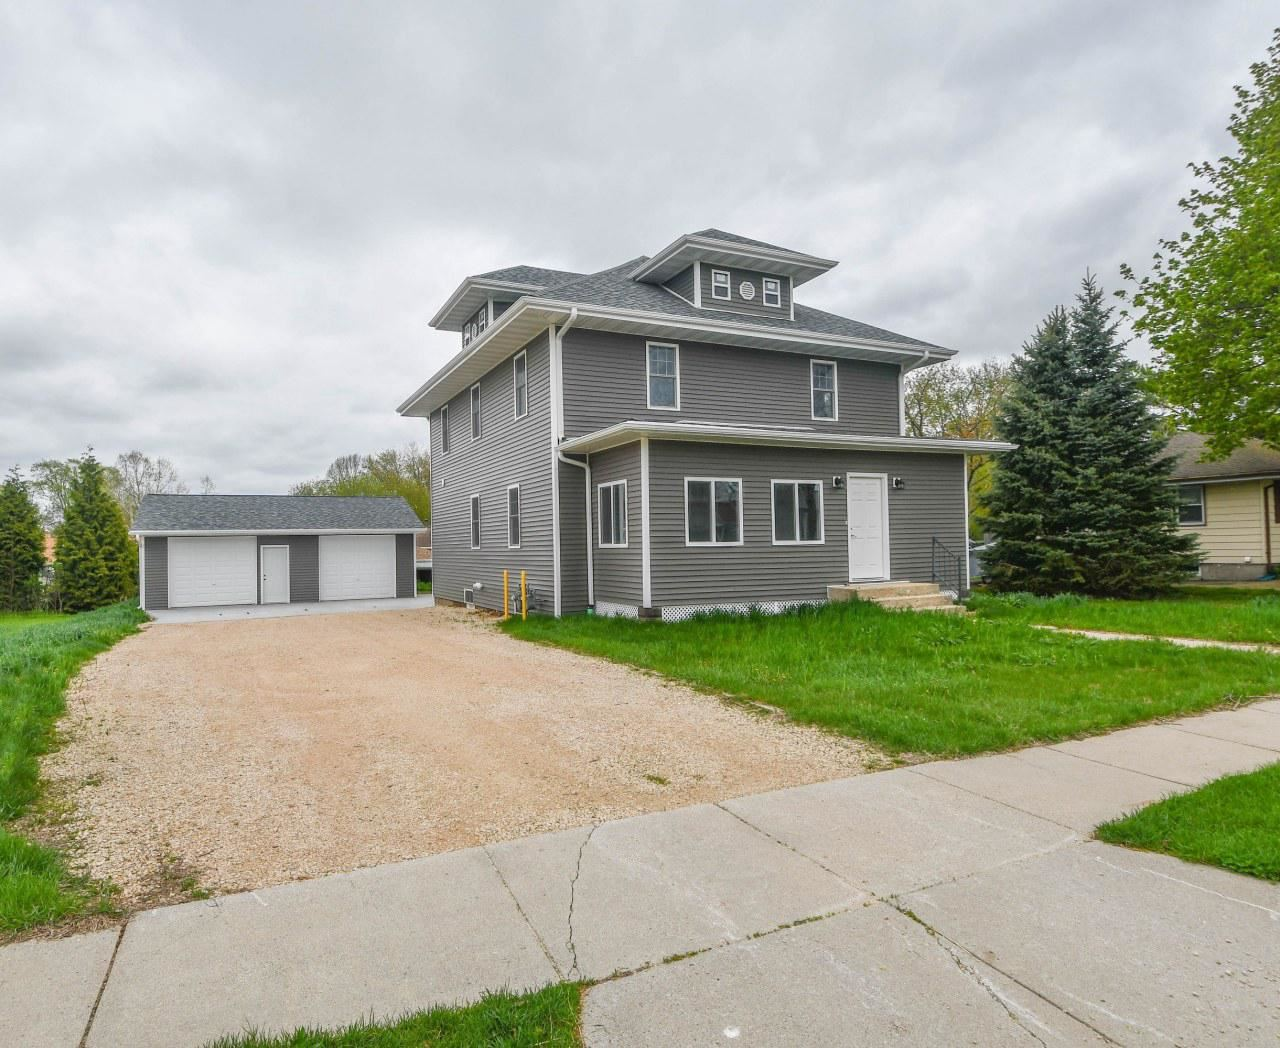 803 Columbia St, Horicon, WI 53032 - MLS#: 1739608